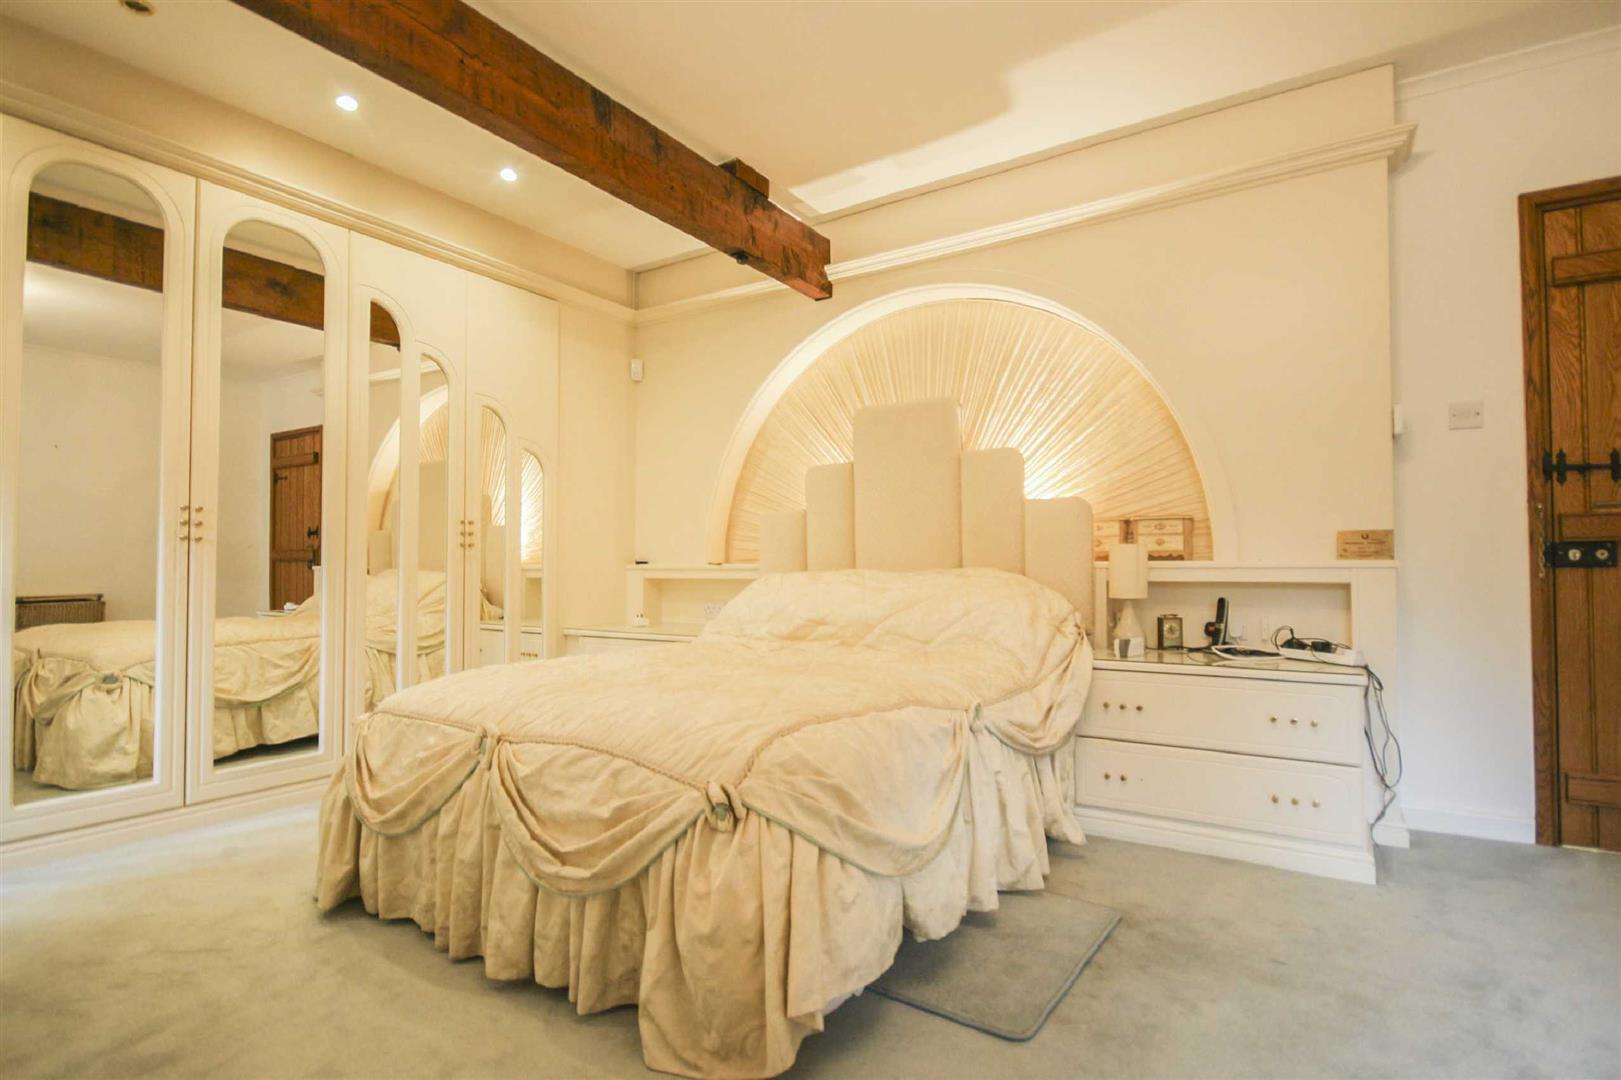 3 Bedroom Barn Conversion For Sale - Image 7